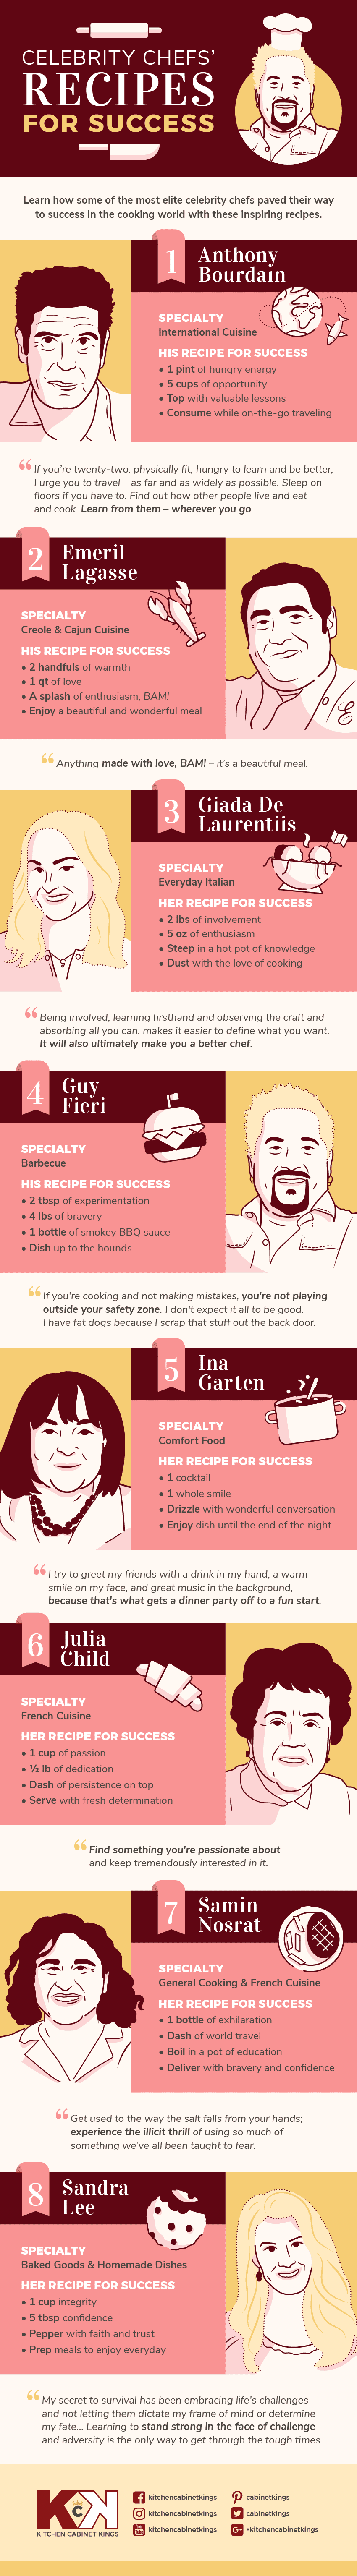 8 Recipes for success of the Chef Celebrity #infographic